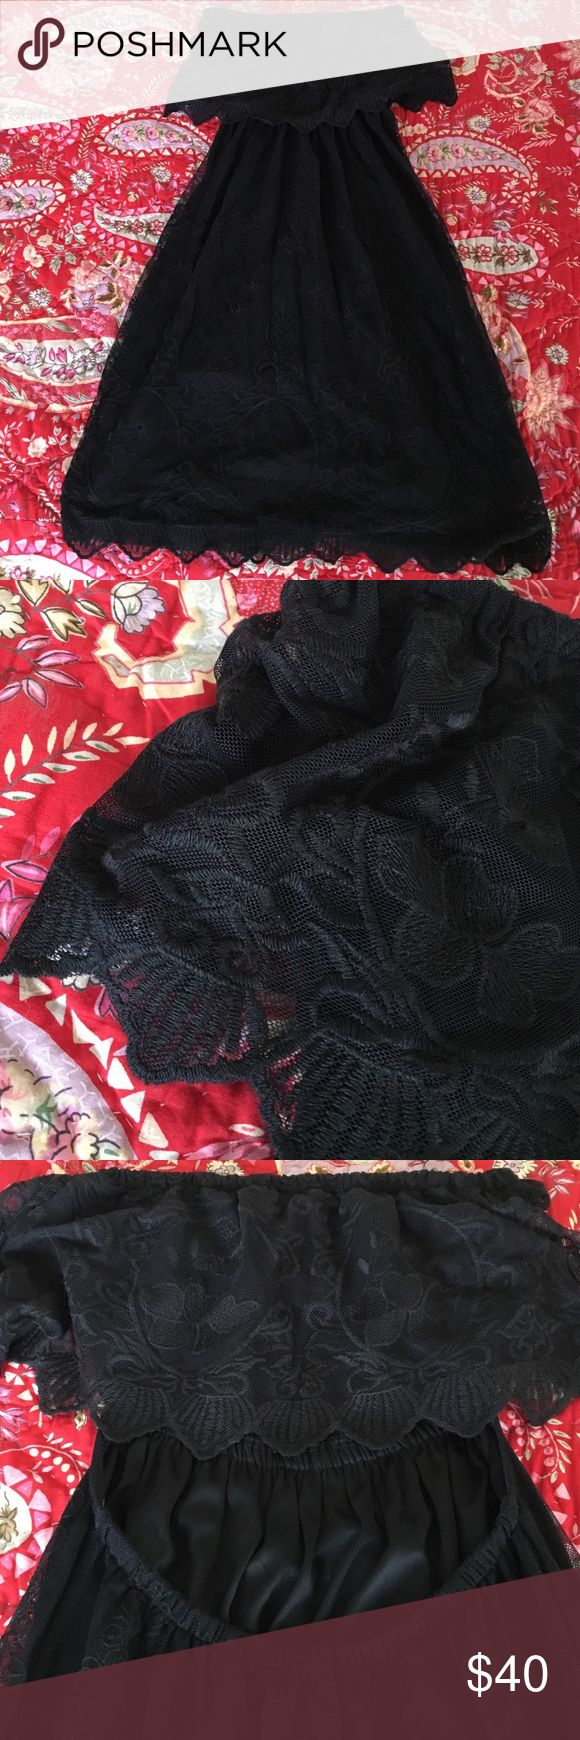 Strapless black lace dress Strapless and open back.  Black lace dress from Express.  So easy to wear with heels, booties or sandals.  Cute with leather jacket or jean jacket.  Was worn once. Express Dresses Strapless